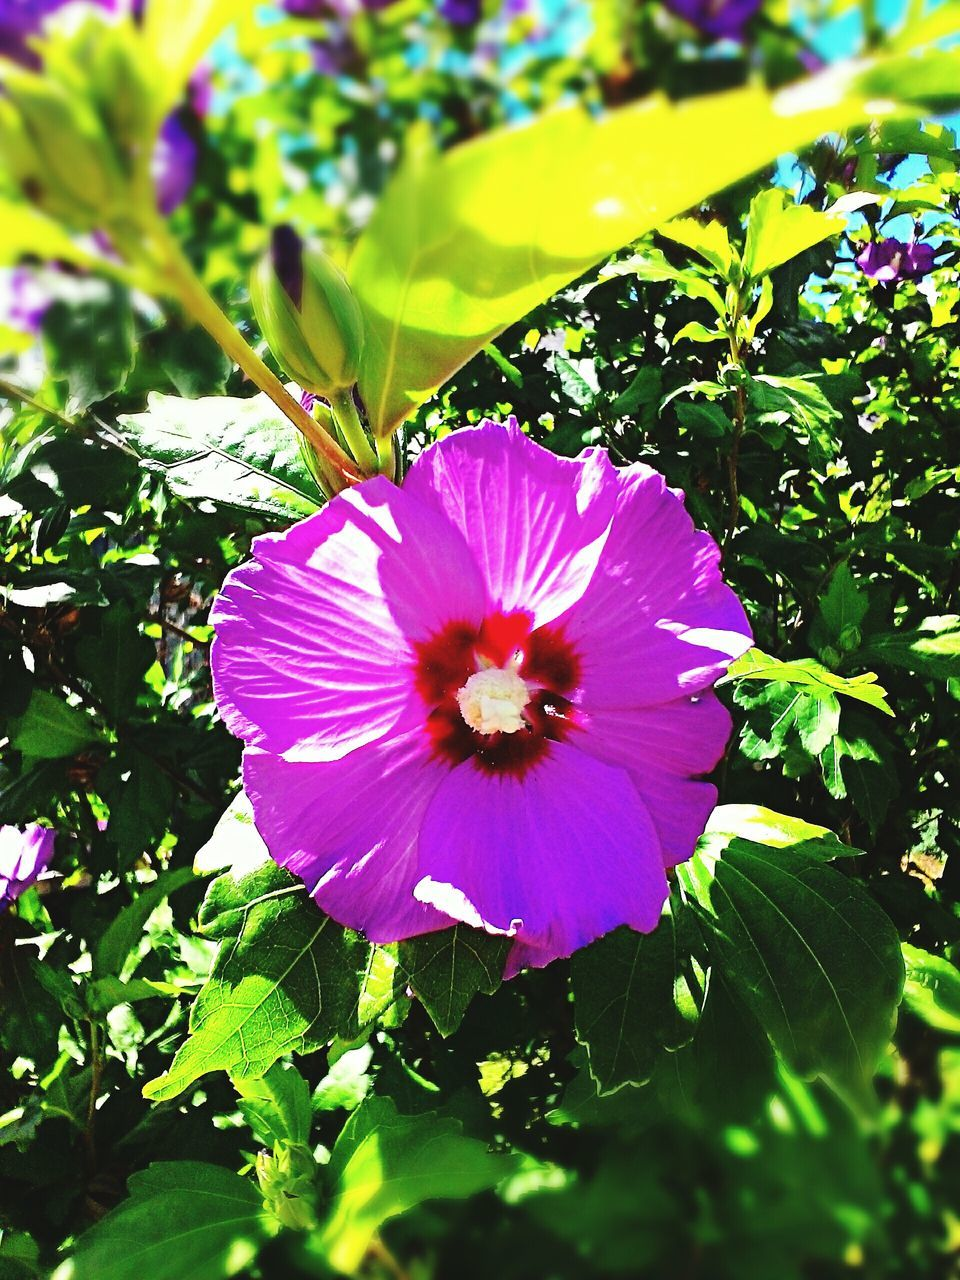 flower, petal, fragility, beauty in nature, nature, growth, freshness, flower head, plant, leaf, blooming, purple, day, green color, no people, outdoors, pink color, close-up, petunia